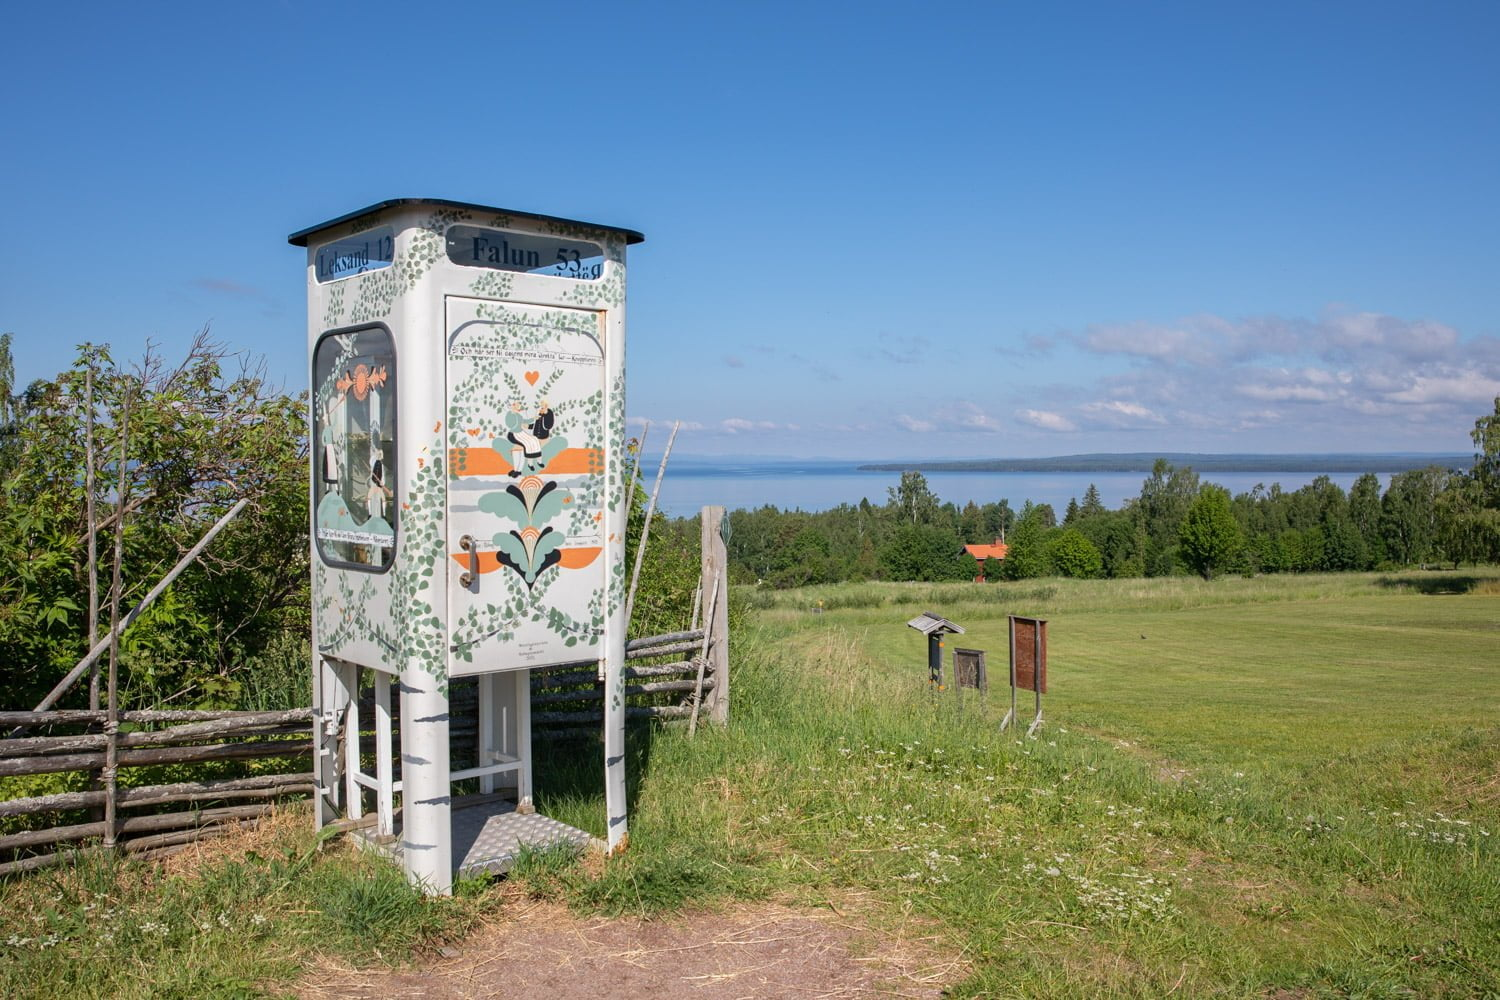 Swedens most photographed phone booth i Tallberg, Sweden